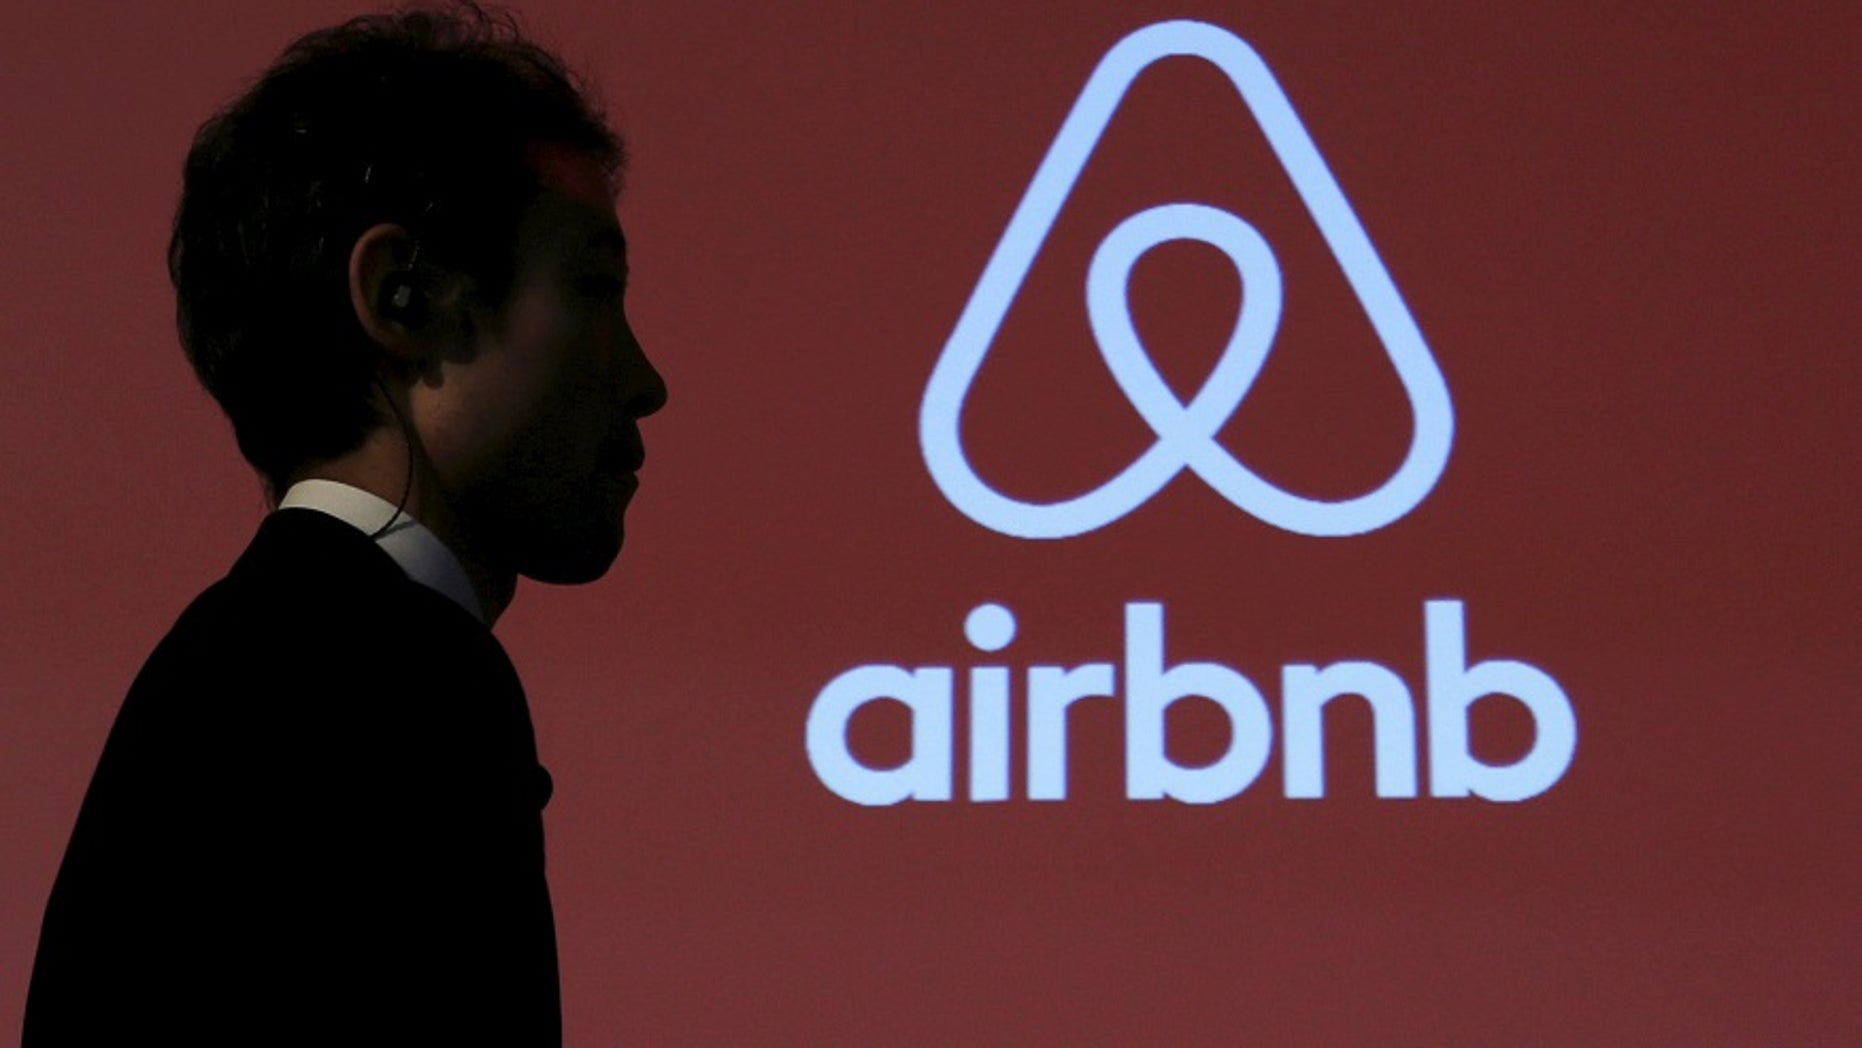 Airbnb announced that white supremacists are permanently barred from using the service to reserve lodging.